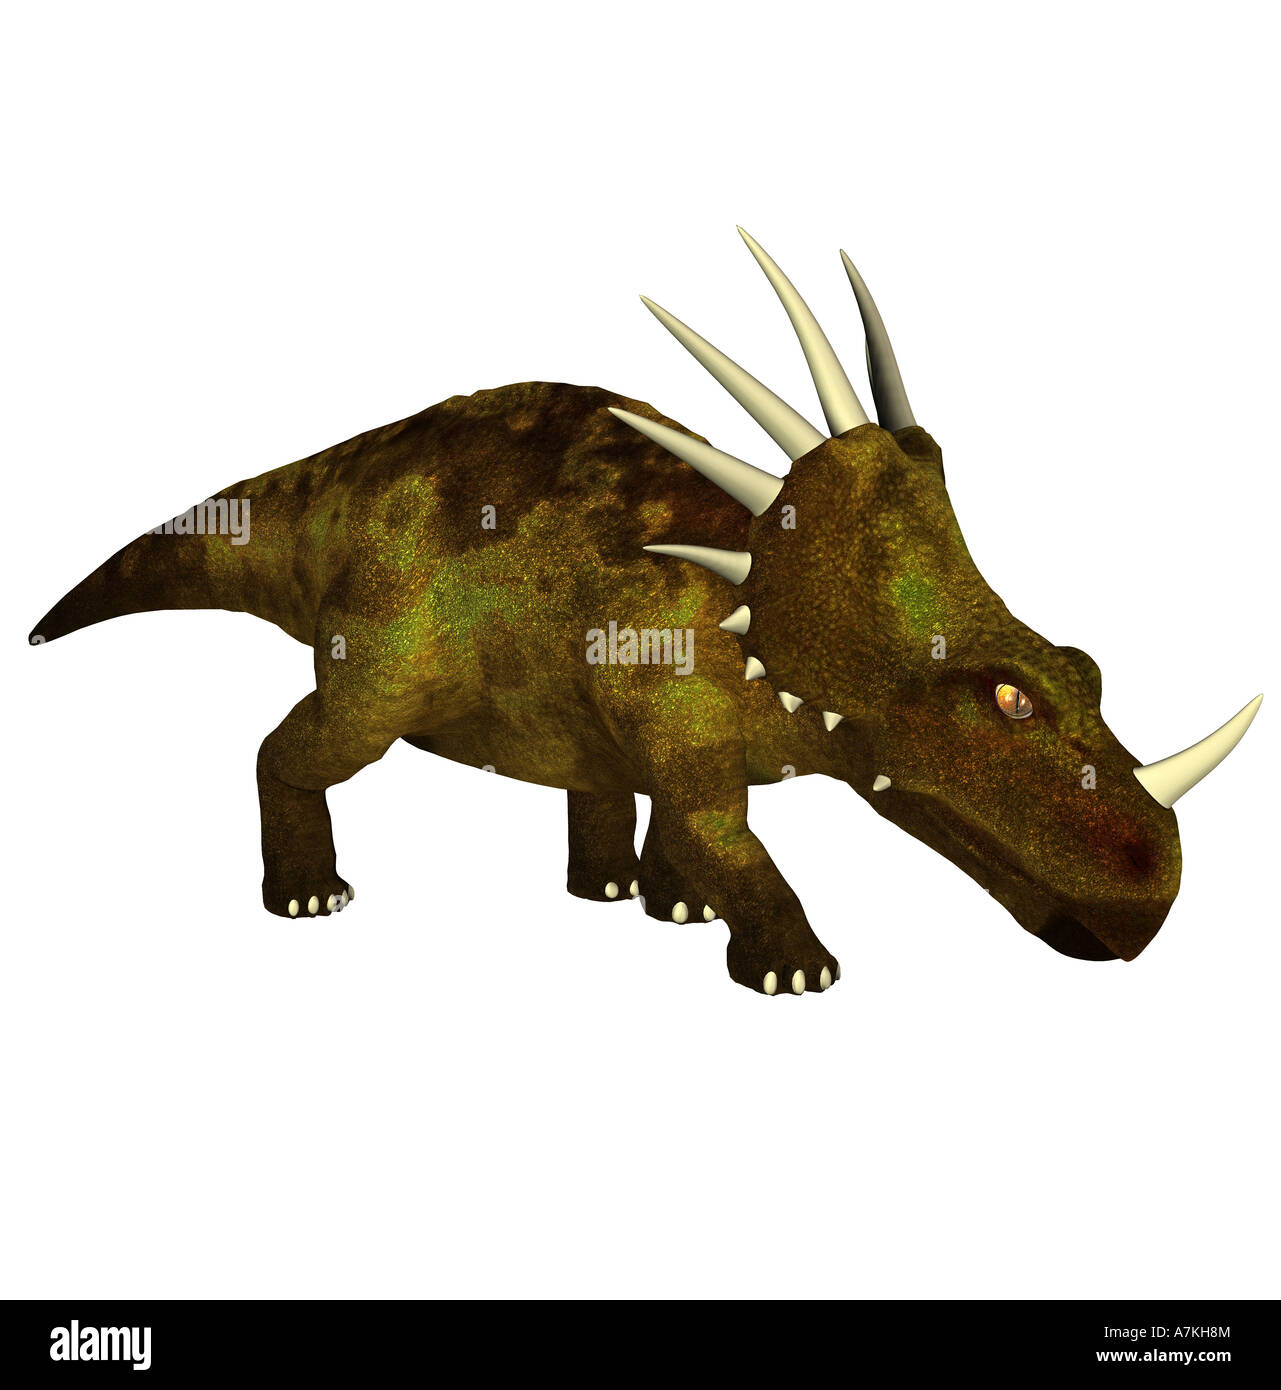 Styracosaurus  dinosaurStock Photo